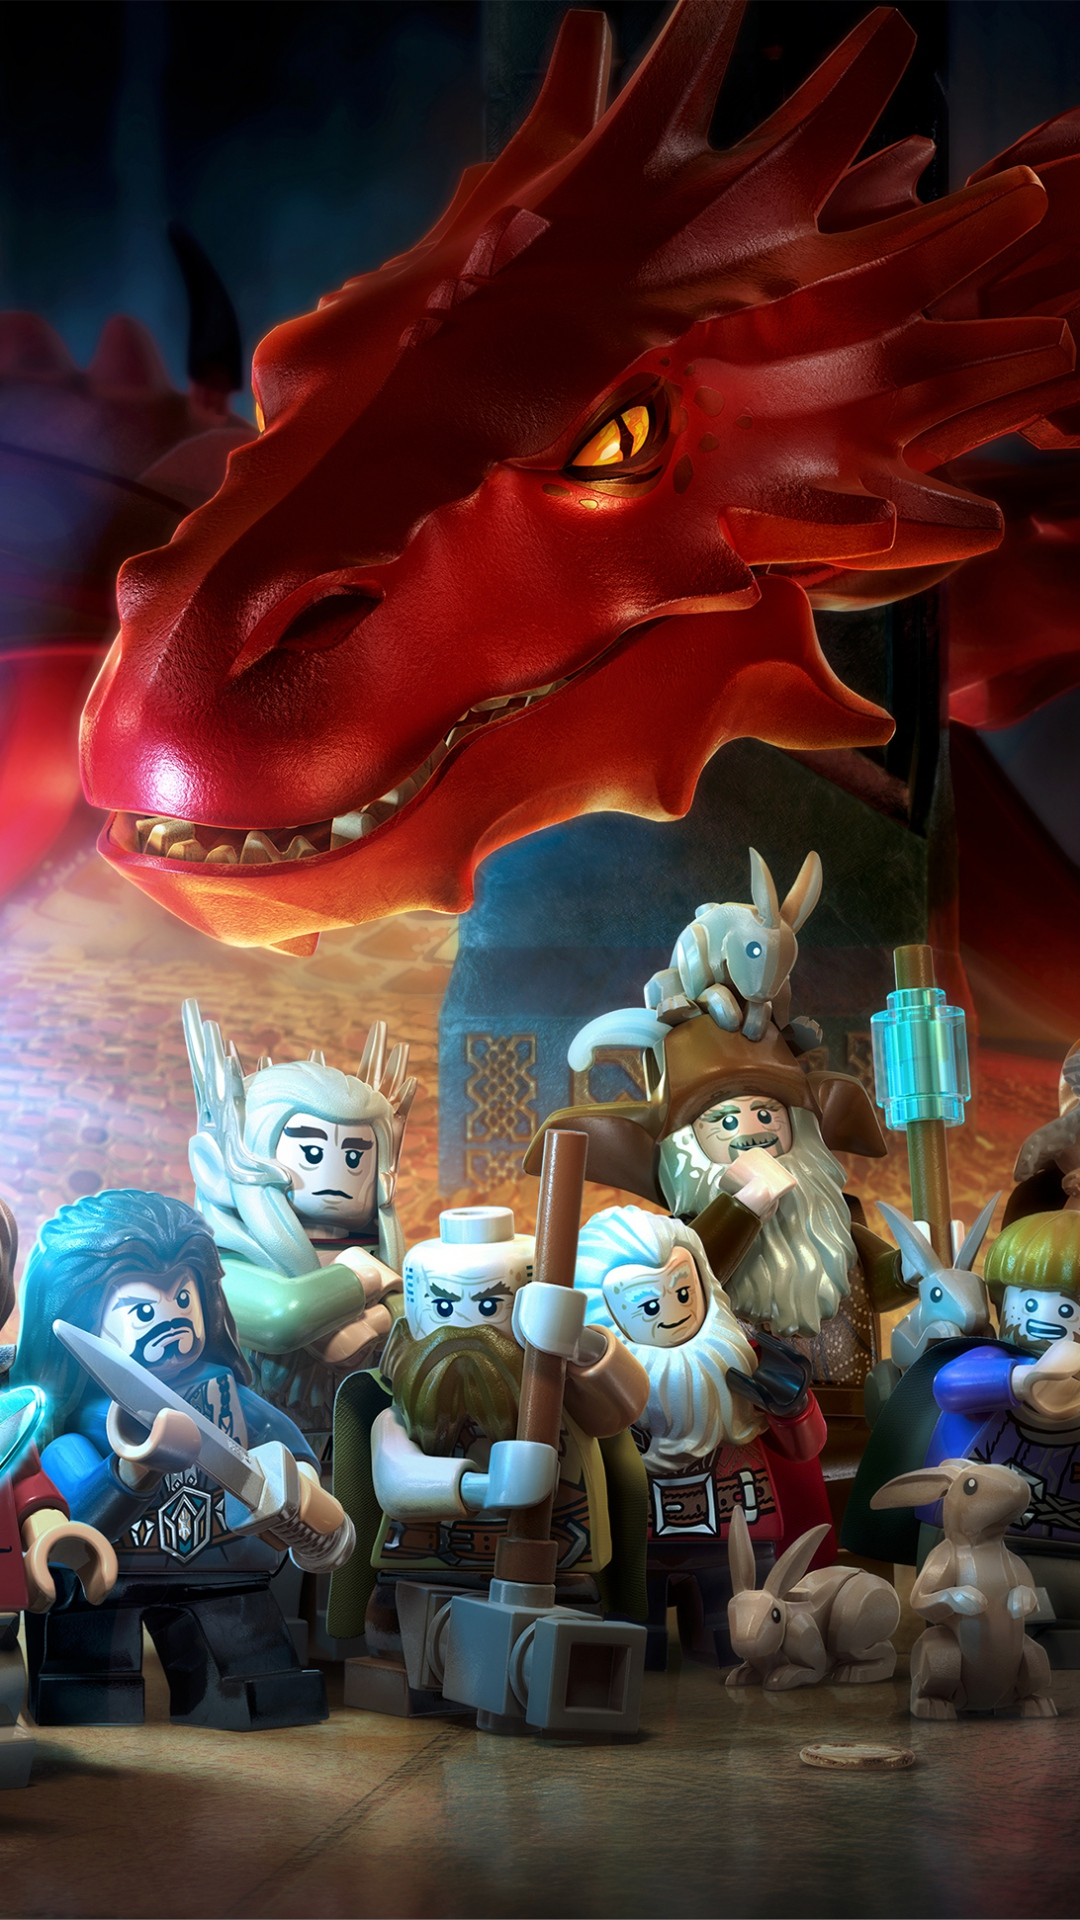 1080x1920 Wallpaper lego the hobbit lego art game characters 2014 1080x1920